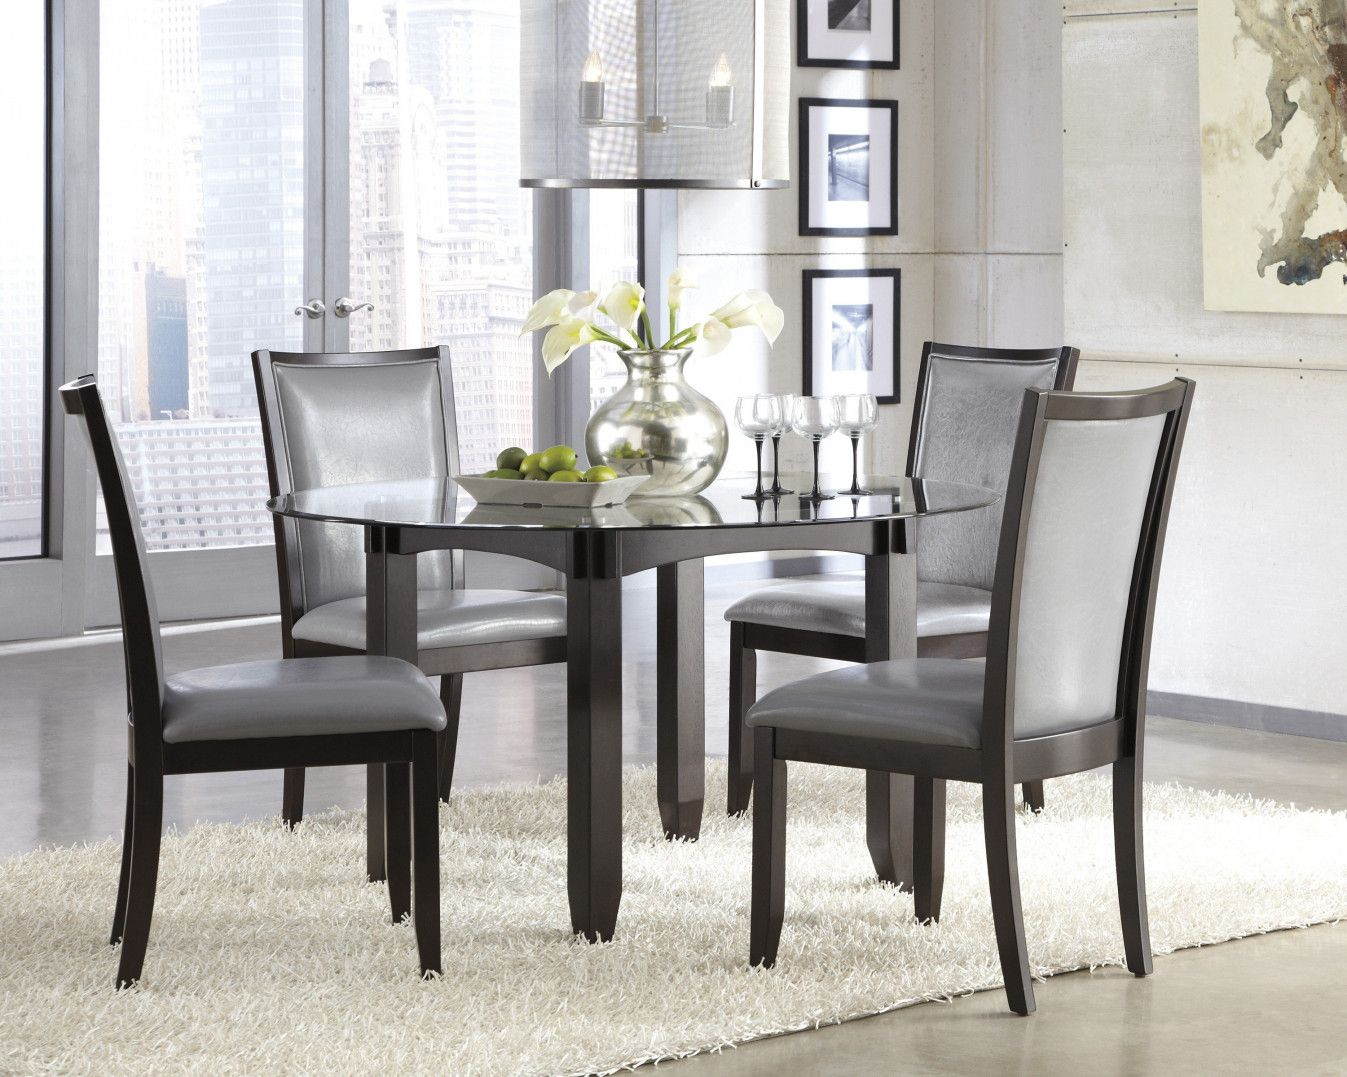 Elite Dining Room Furniture 99 Black And Grey Dining Chairs  Elite Modern Furniture Check